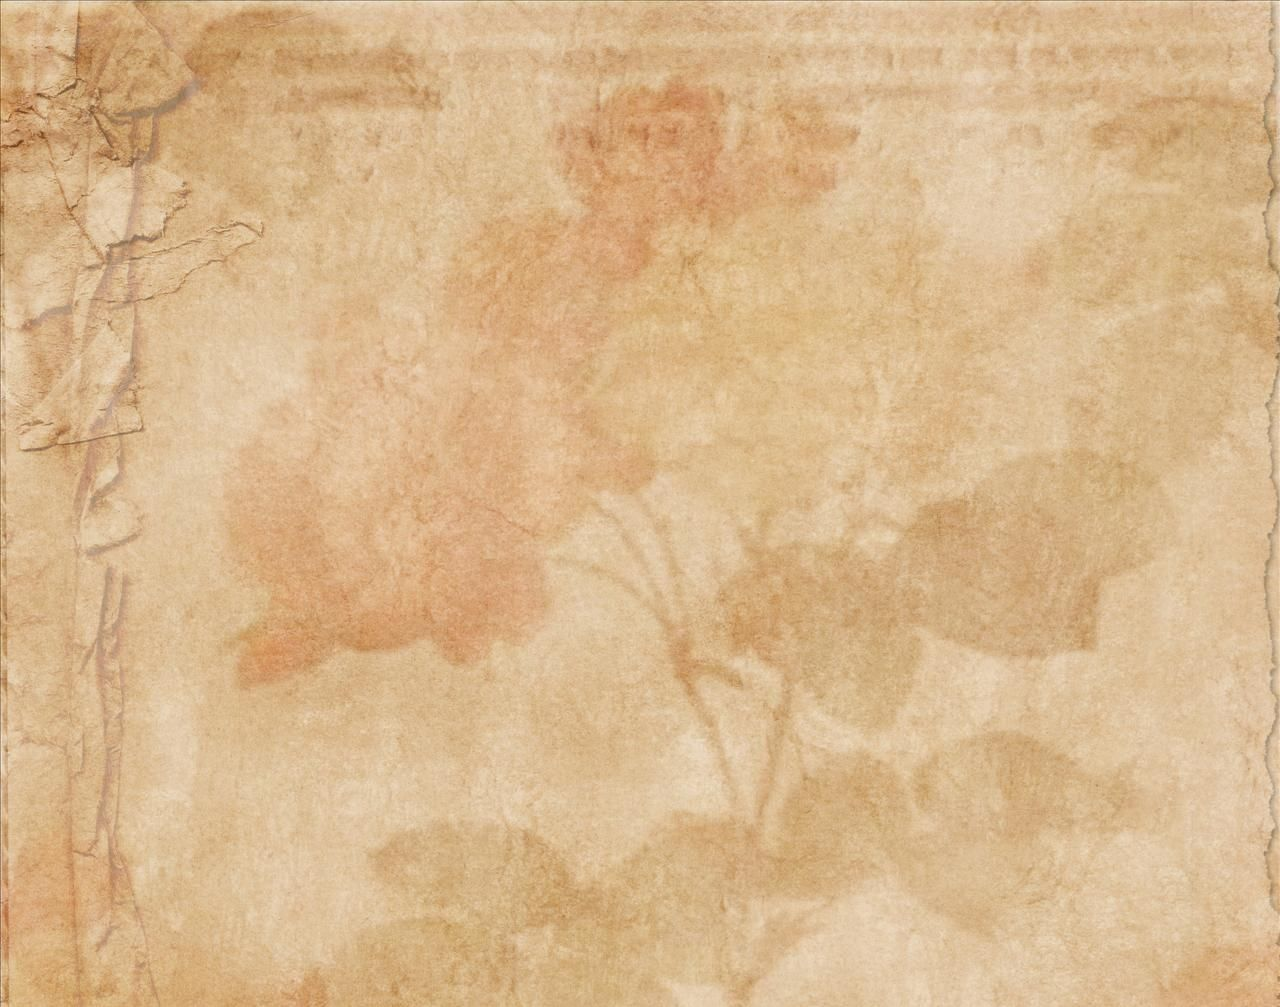 Vintage Backgrounds Use This Background In Your Picaboo Photo Book Background Vintage Photoshop Textures Background